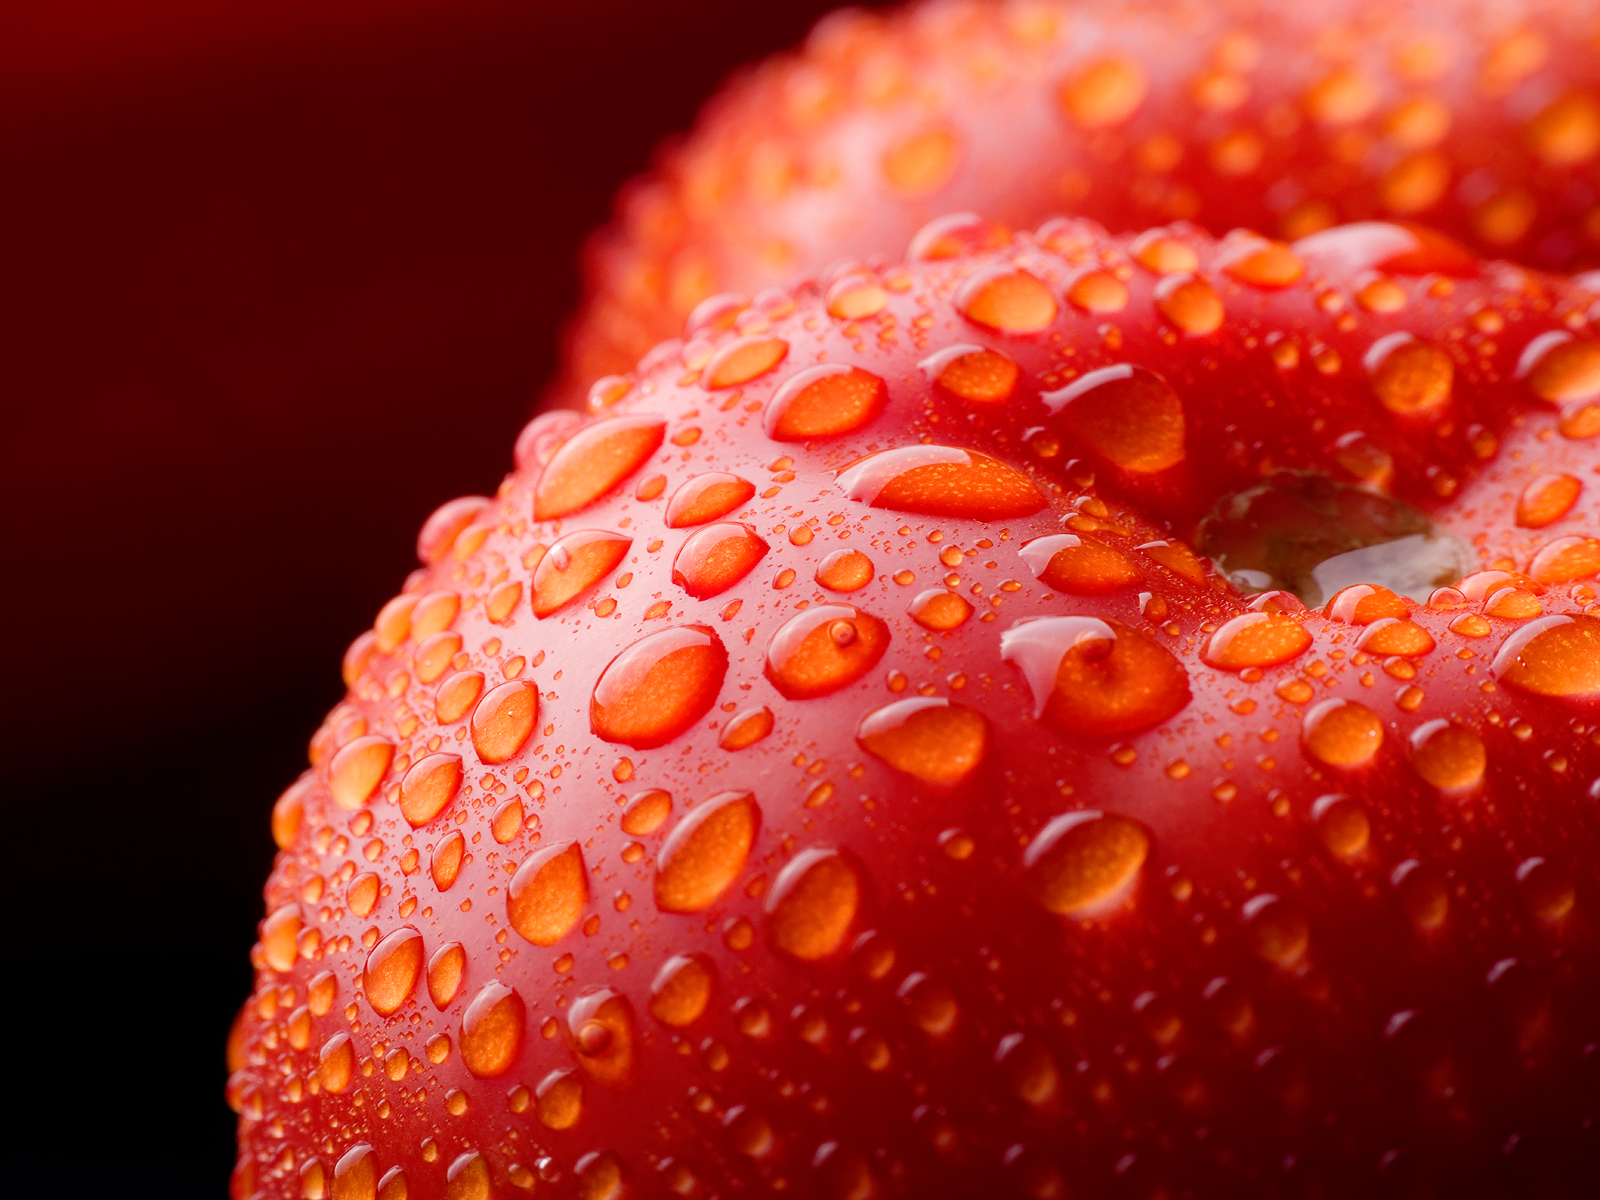 red apple hd 34690 1600x1200px